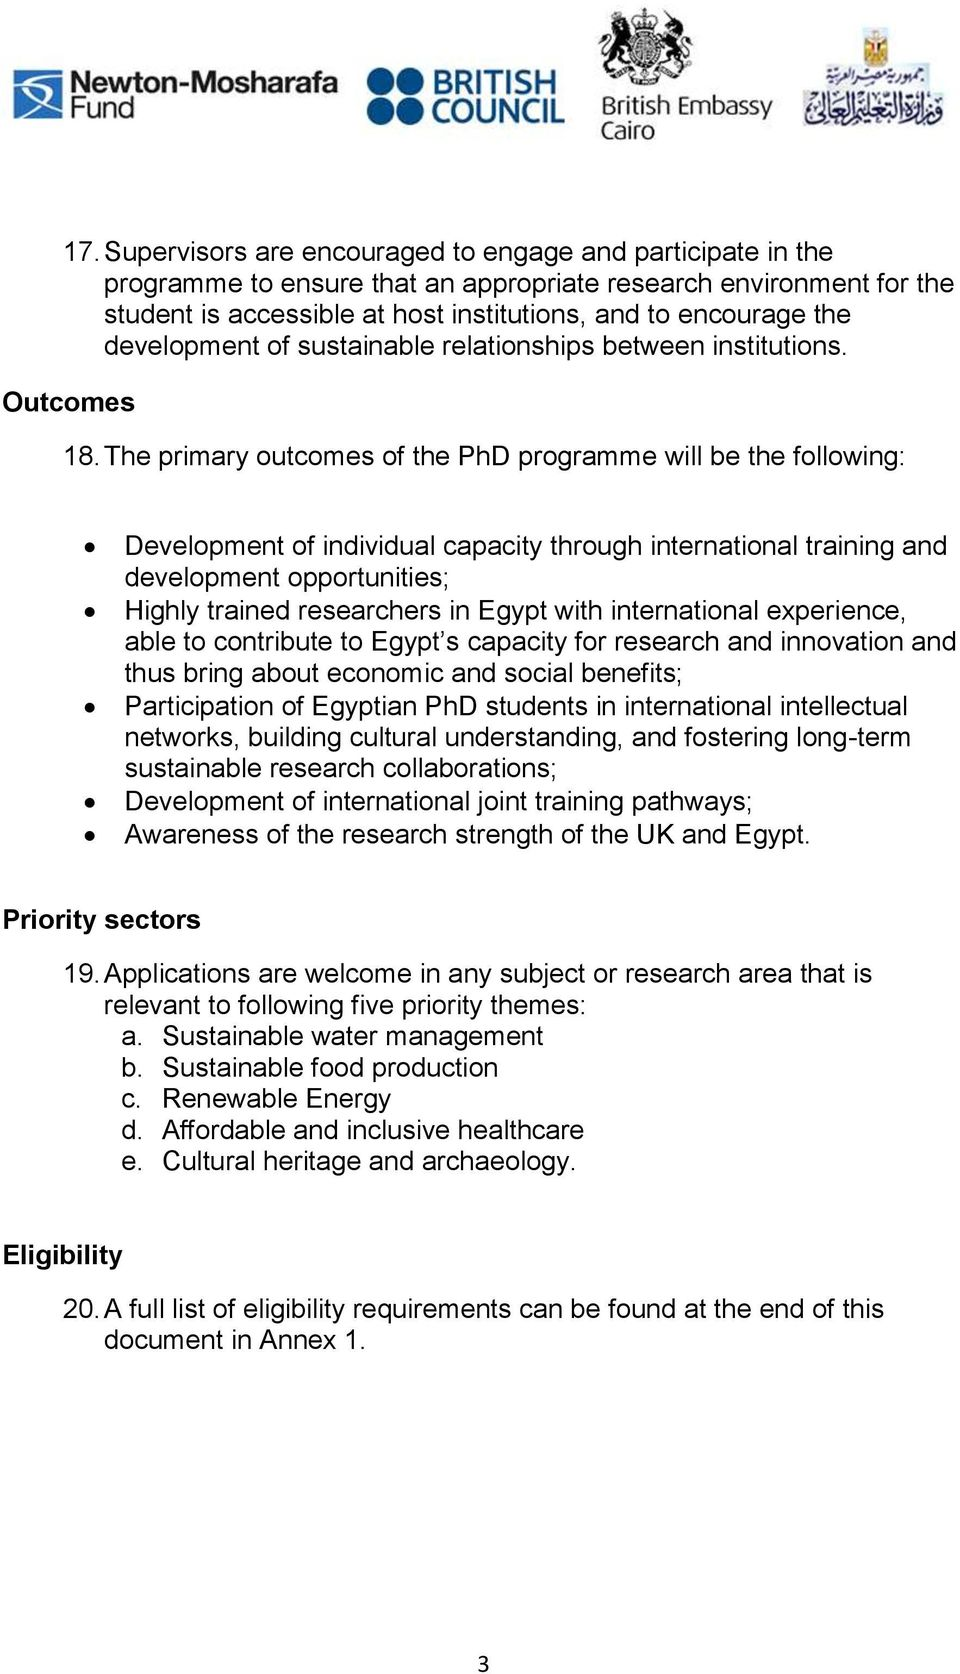 The primary outcomes of the PhD programme will be the following: Development of individual capacity through international training and development opportunities; Highly trained researchers in Egypt